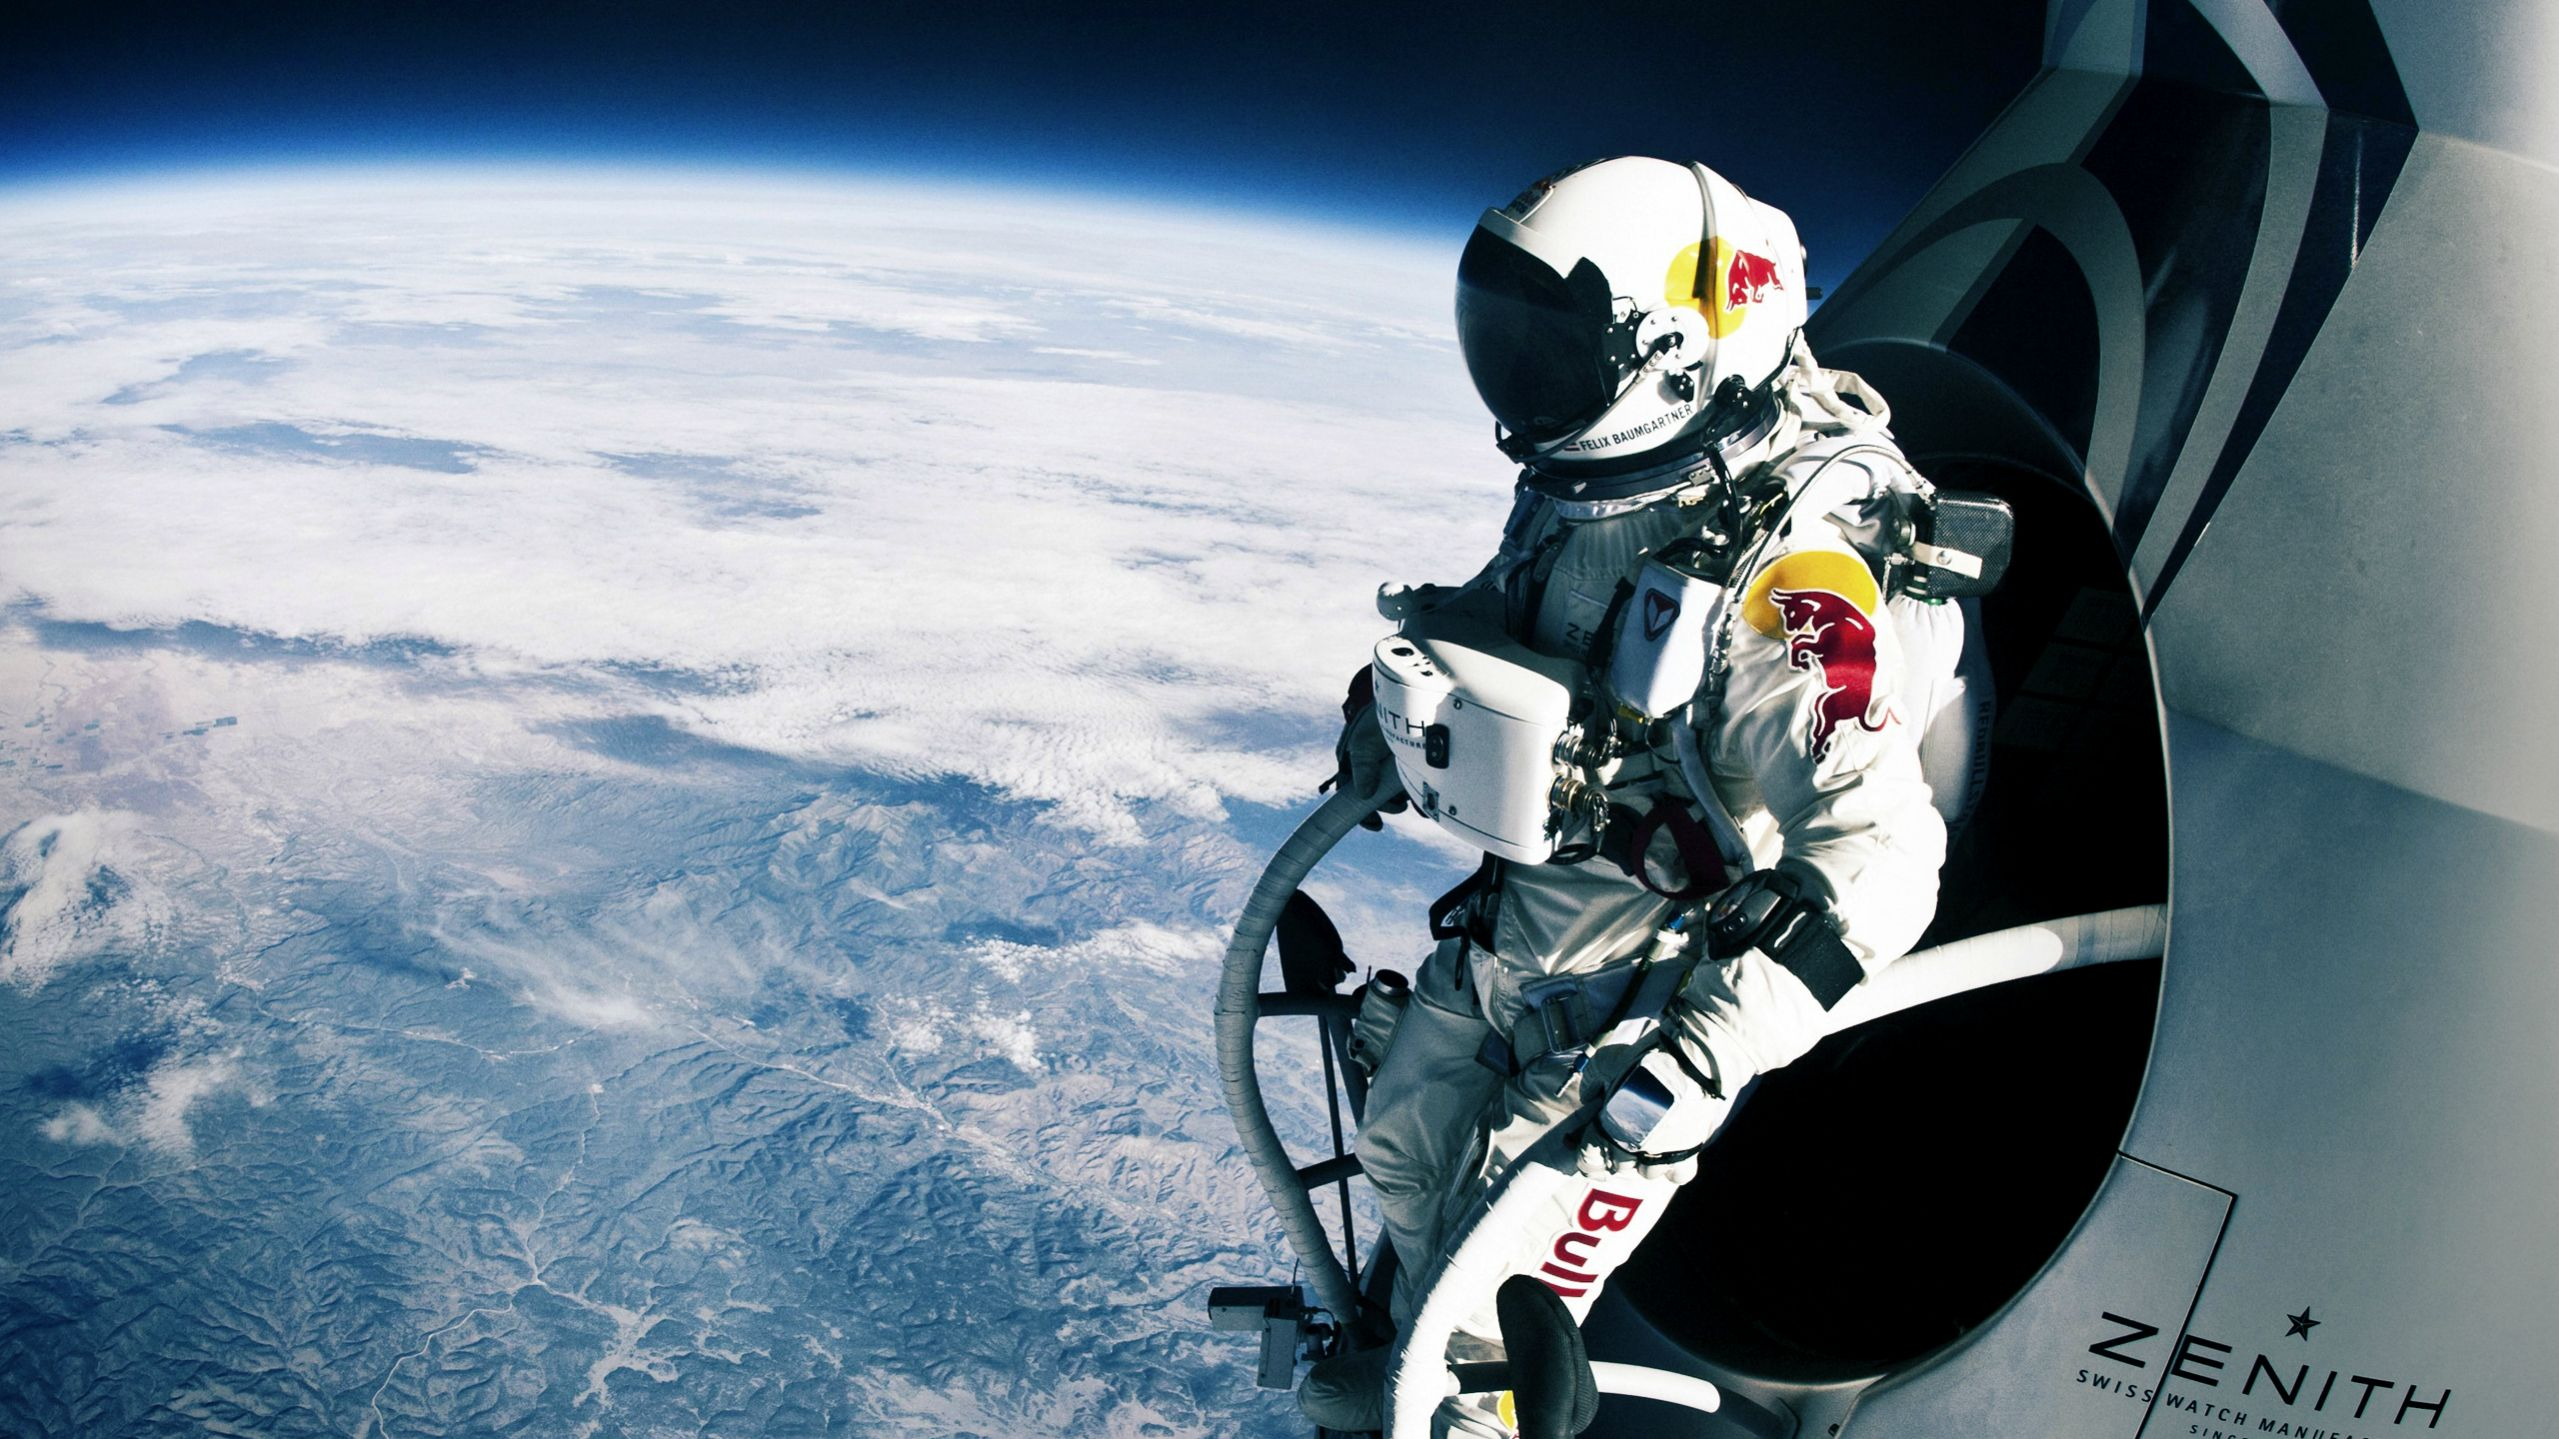 128100ft freefall from the edge of space to Earth on 15 October 2012